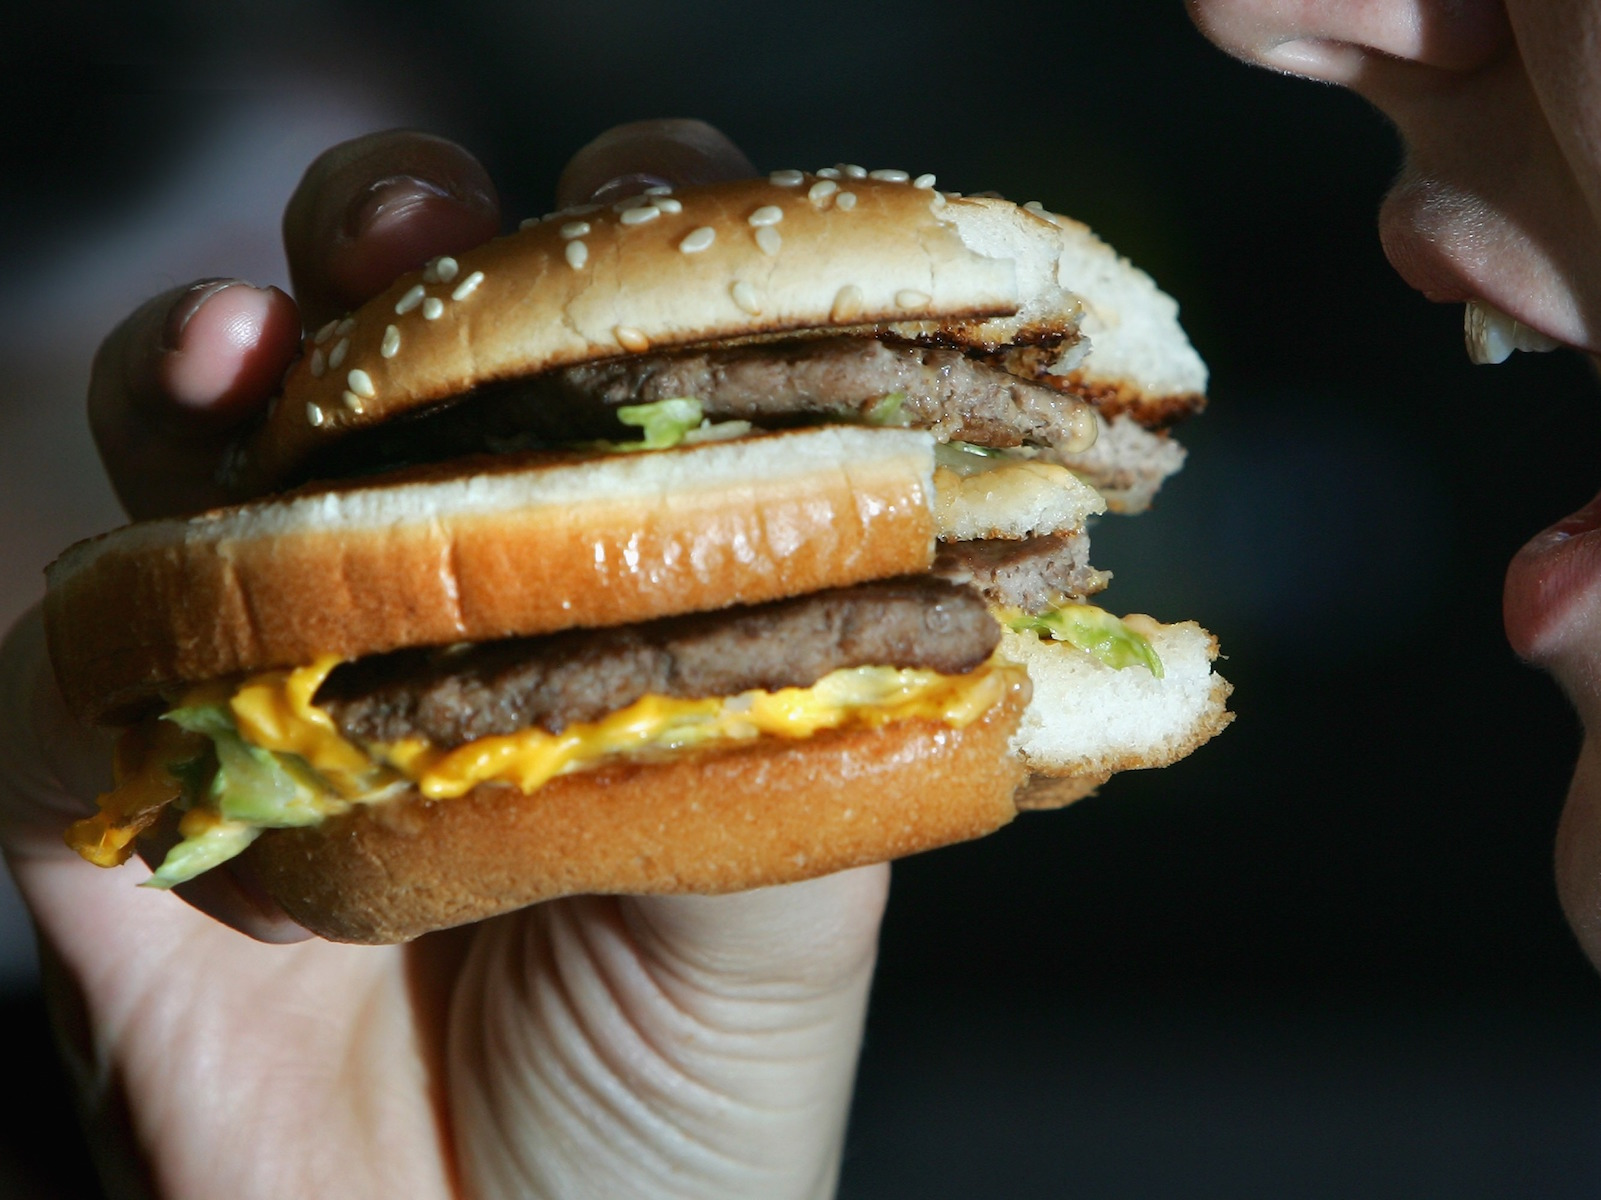 When Will the Big Mac Go Vegan?